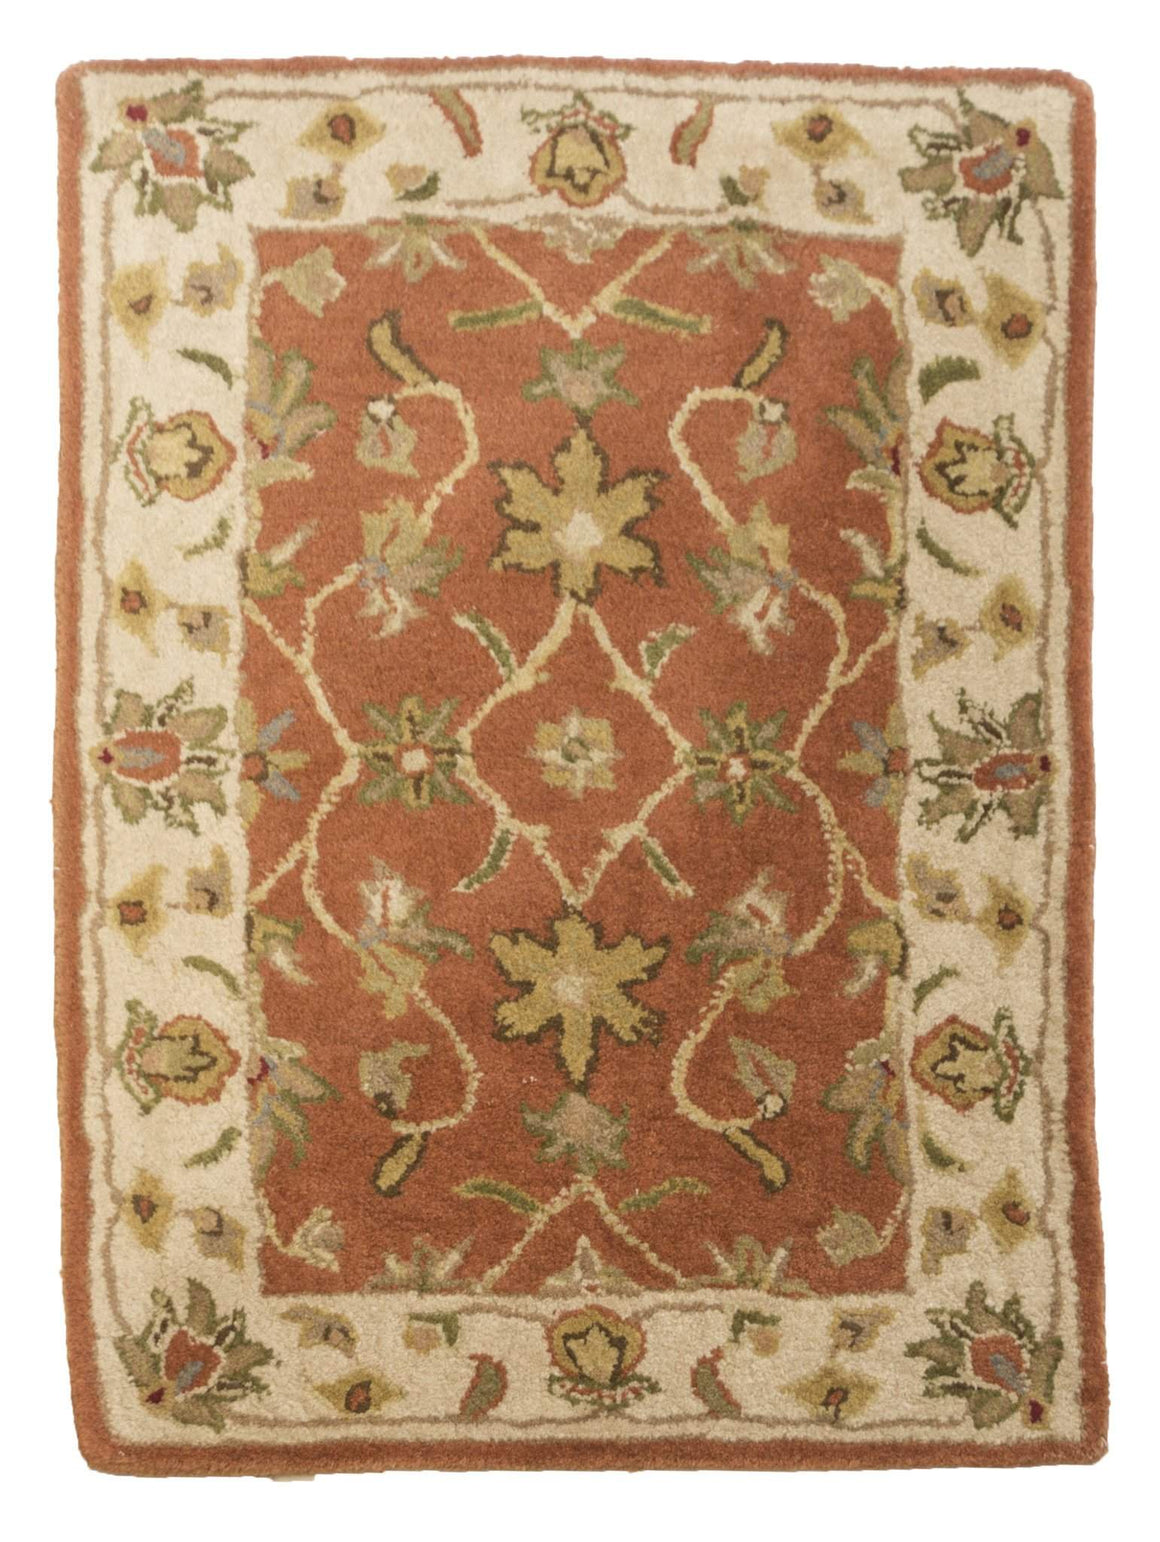 2' x 3' Floral Design Small Rug by Rug Shop and More Area Rugs - Rug Shop and More